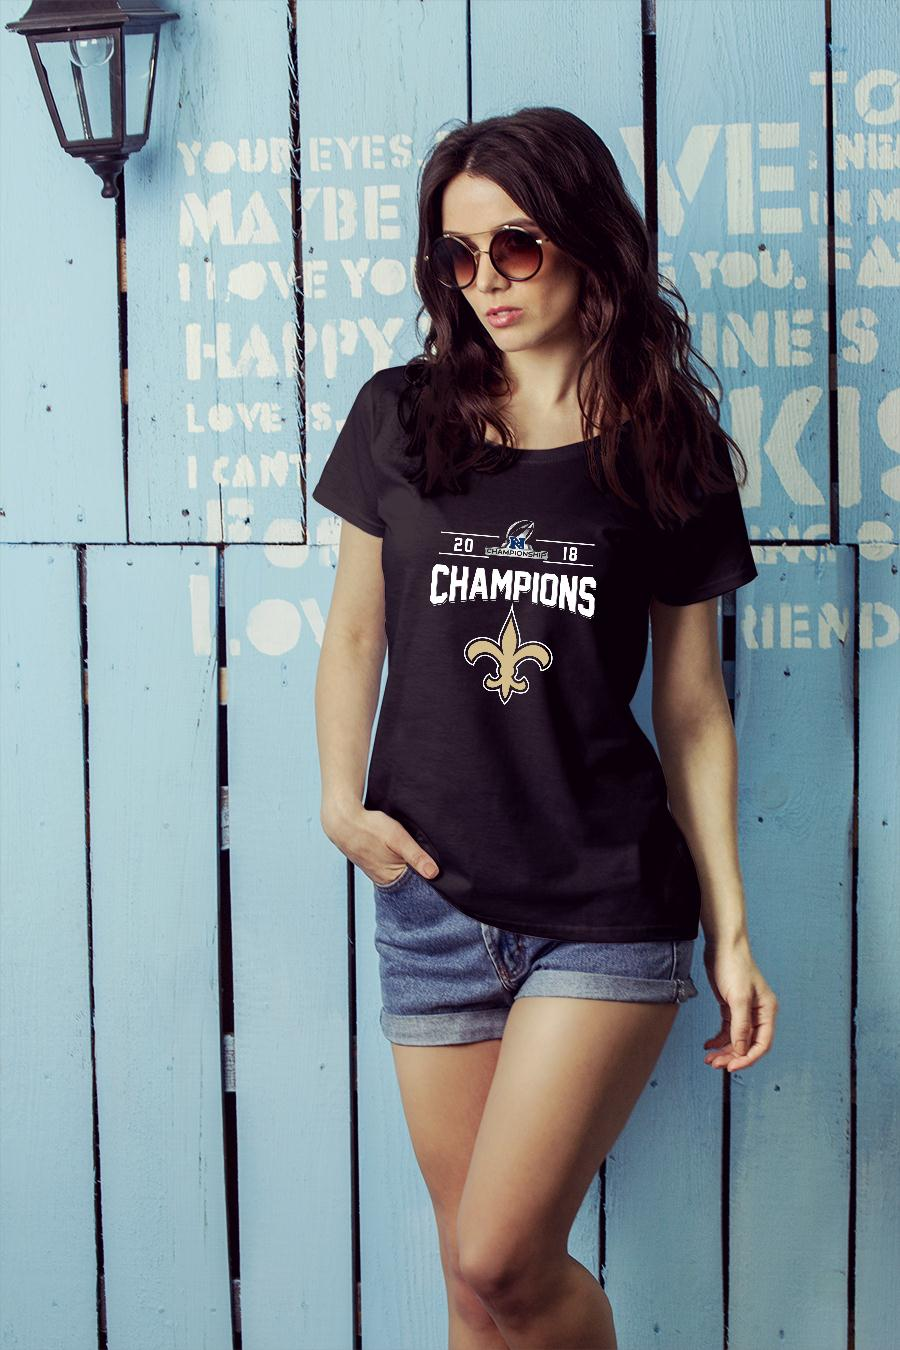 Saints Champions NFC Conference Championships Season 2018 2019 shirt ladies tee official